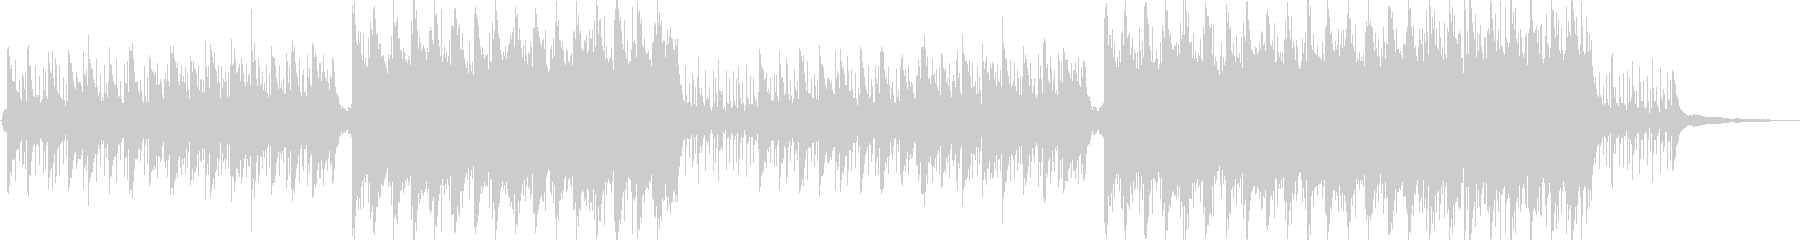 BGM for companies with a strong image's unreproduced waveform